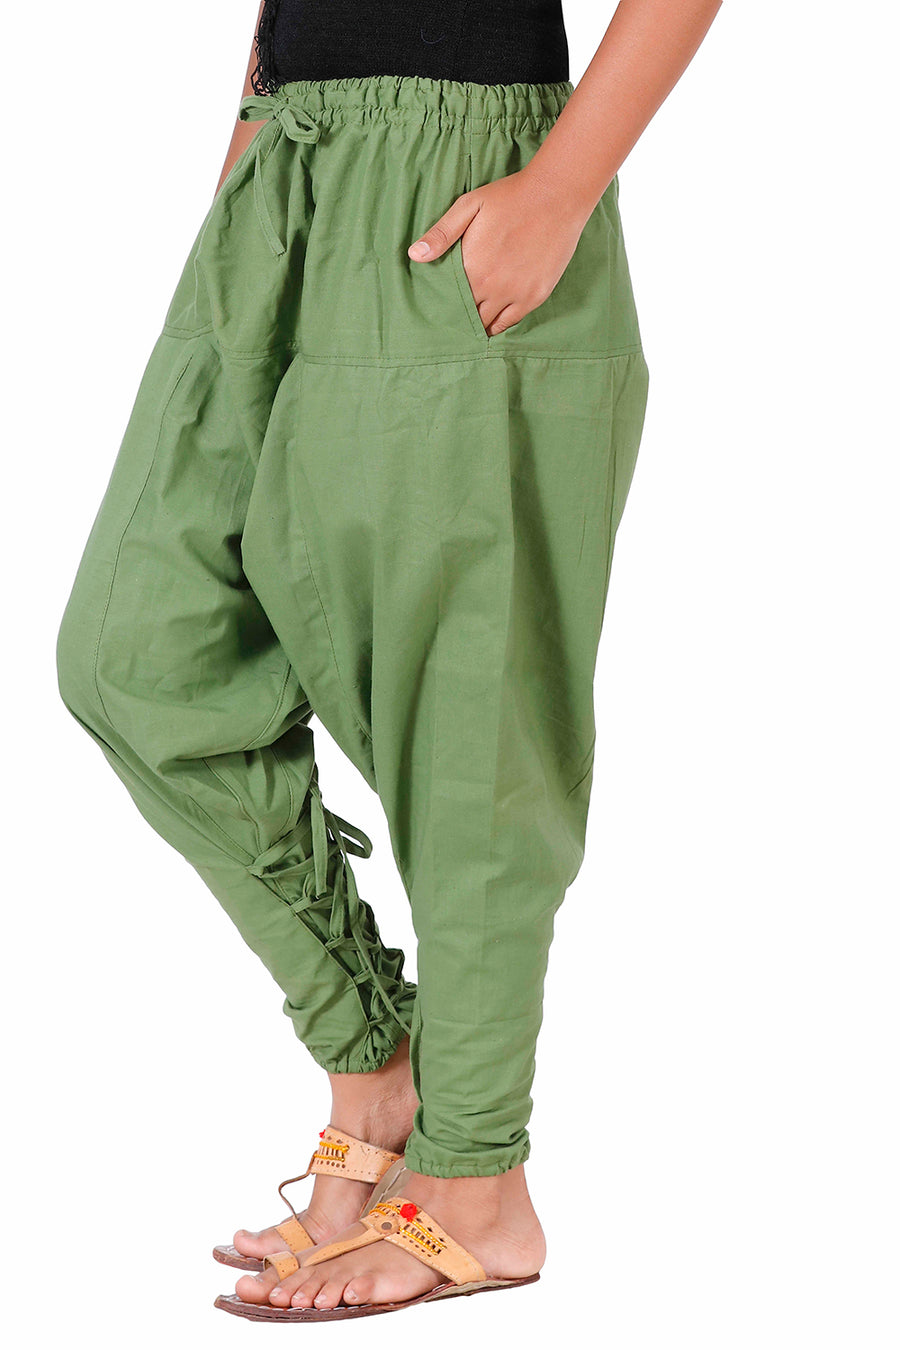 7397299e2 ... Kids Harem Pants, Kids Parachute Pants, Green Harem Pants for kids, ...